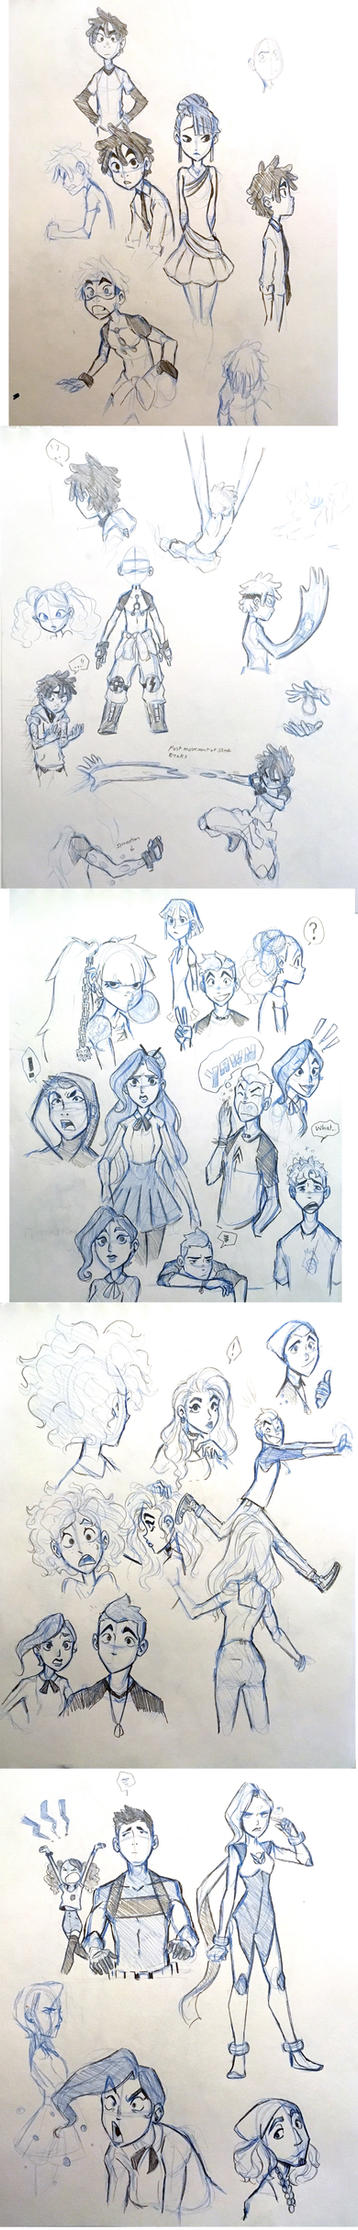 Sketch Dump Day 1 by ActionKiddy